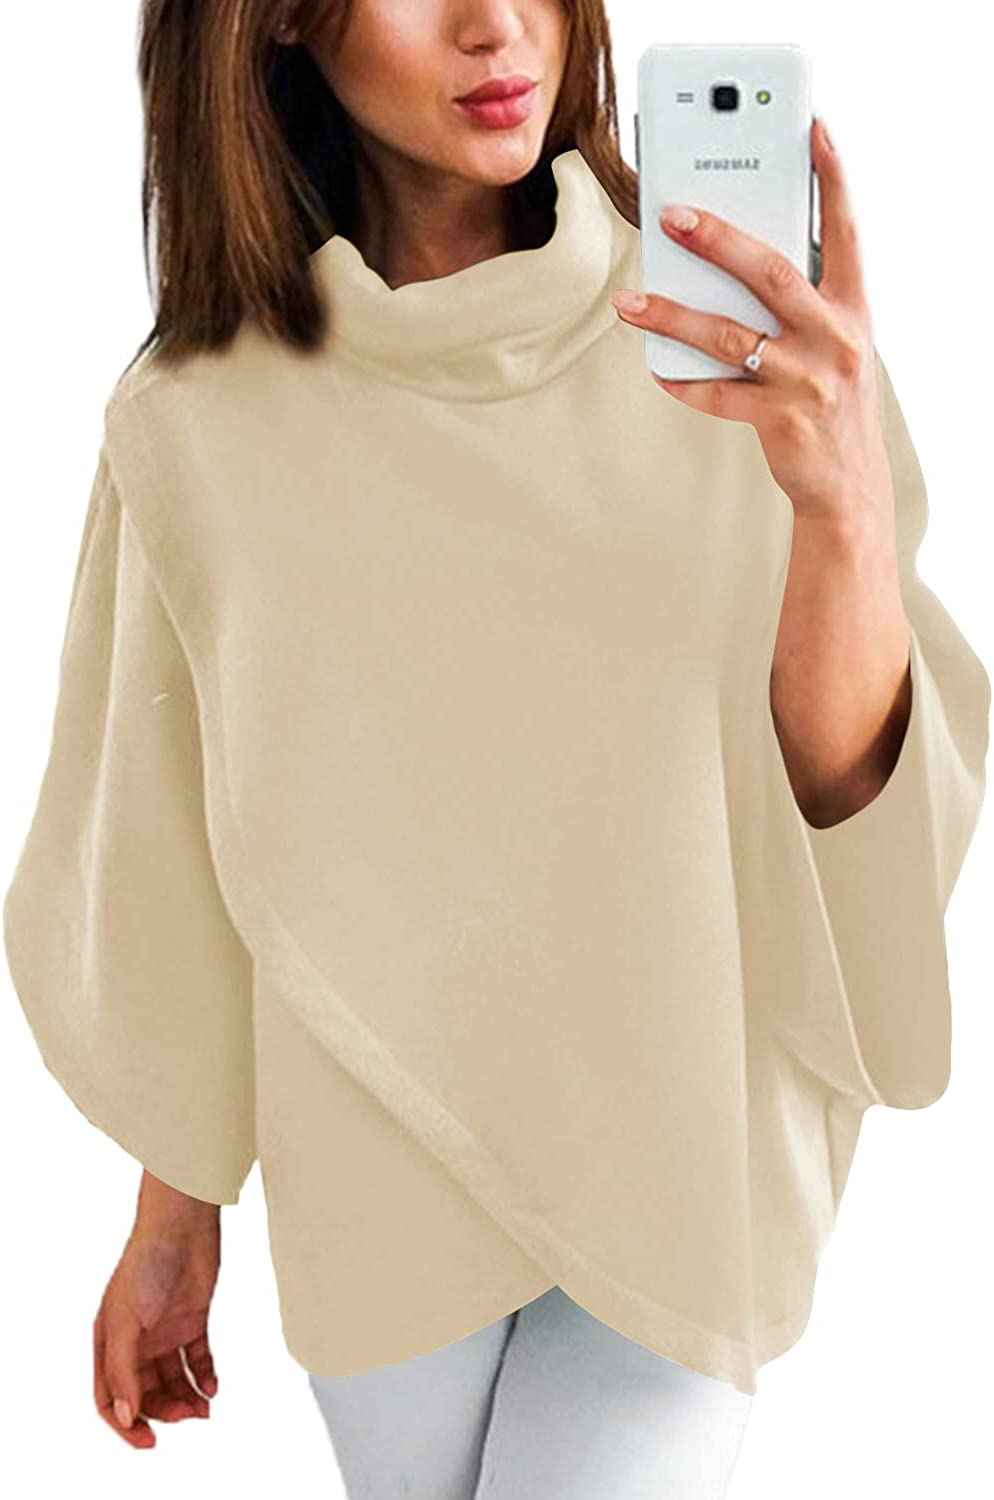 YOINS Outwear Capes Turtleneck Poncho for Women Chimney Collar Flared 3/4 Sleeves Irregular Hem Pullovers